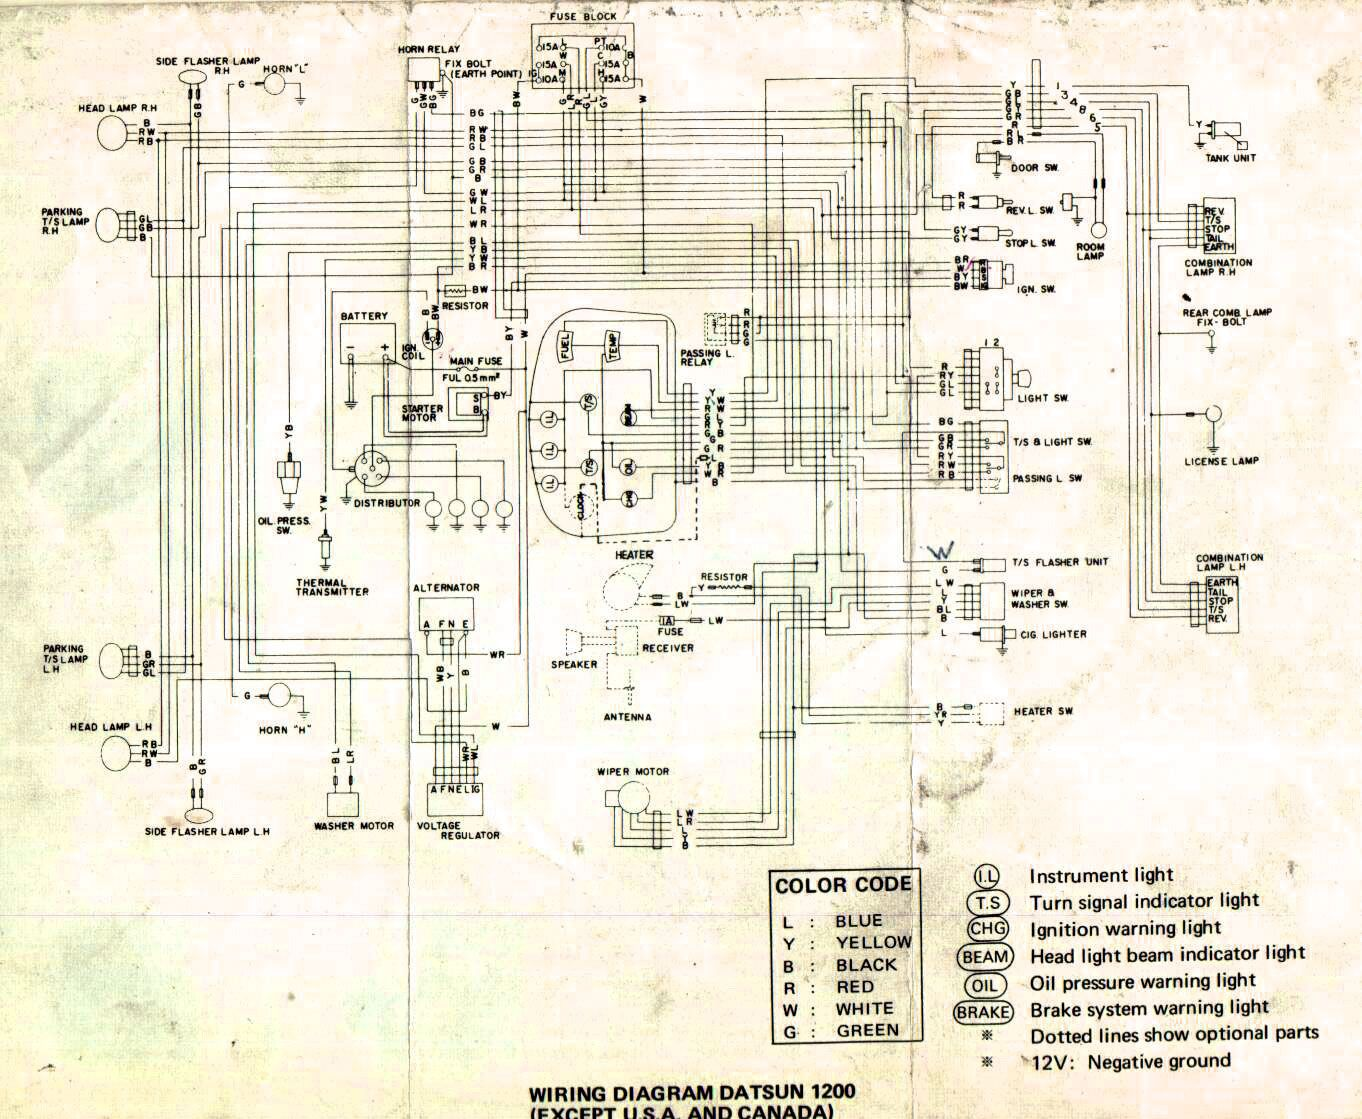 1981 datsun pick up wiring schematic wiring diagram \u2022 1992 nissan truck engine schematic 1981 datsun pickup wiring diagram wire center u2022 rh 66 42 74 58 1979 nissan pickup 1981 nissan truck sports